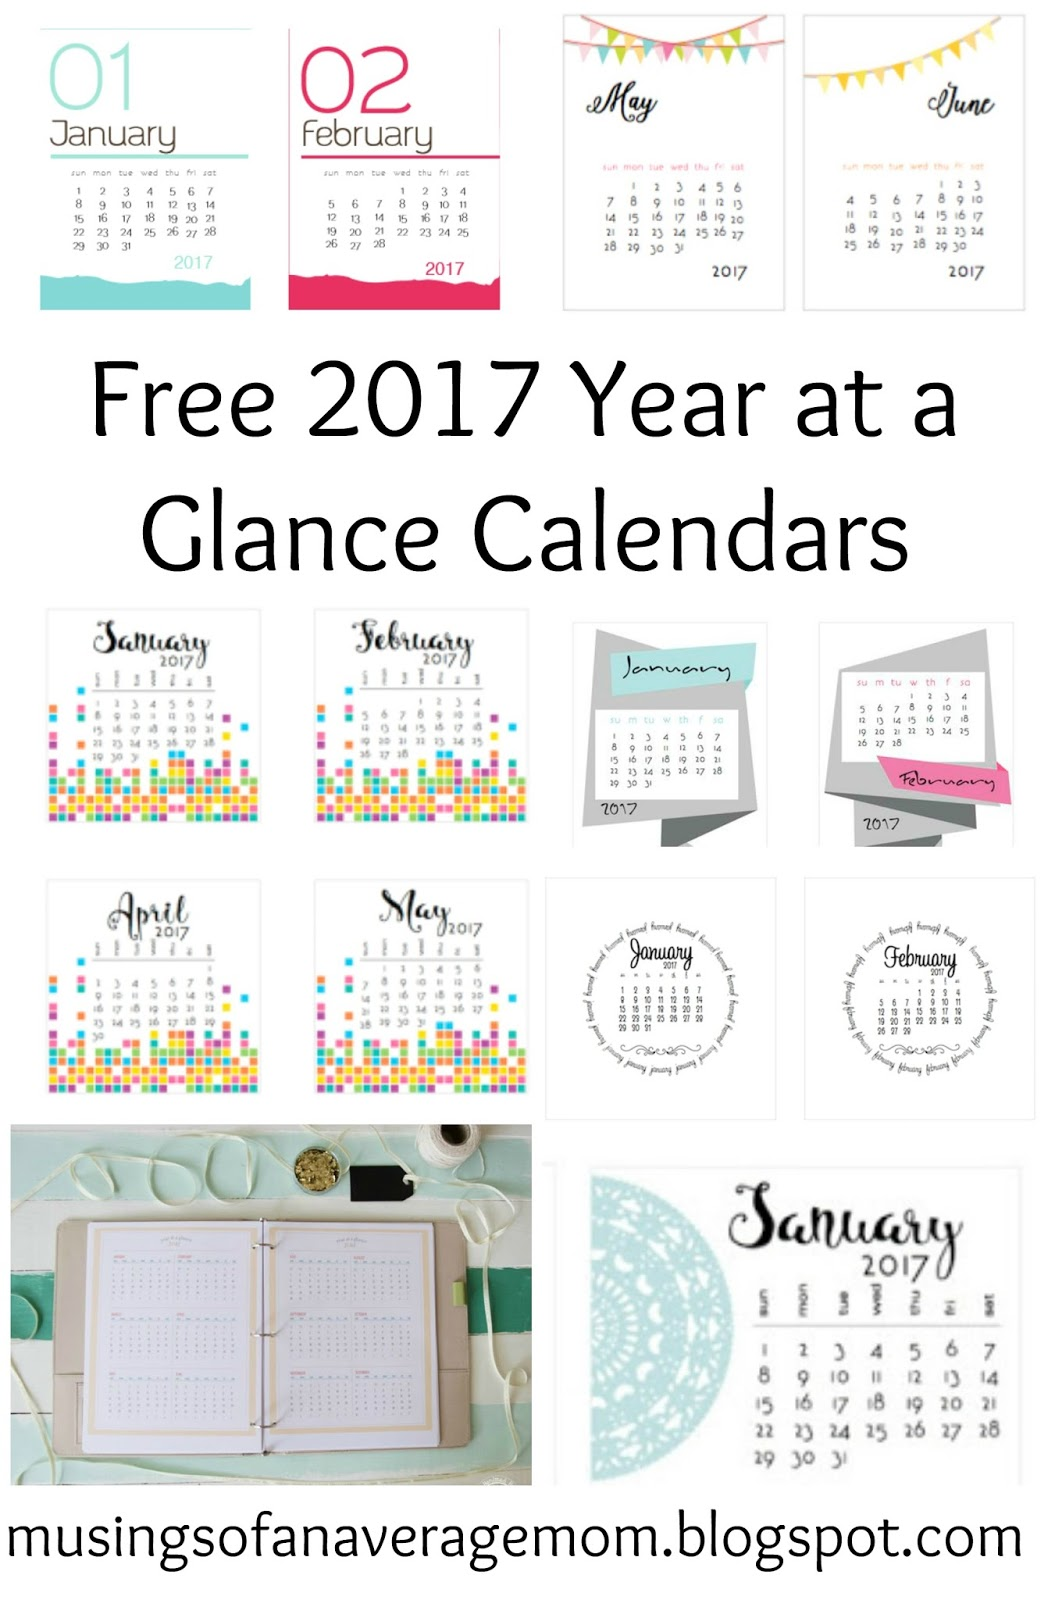 Free 2017 Year at a Glance